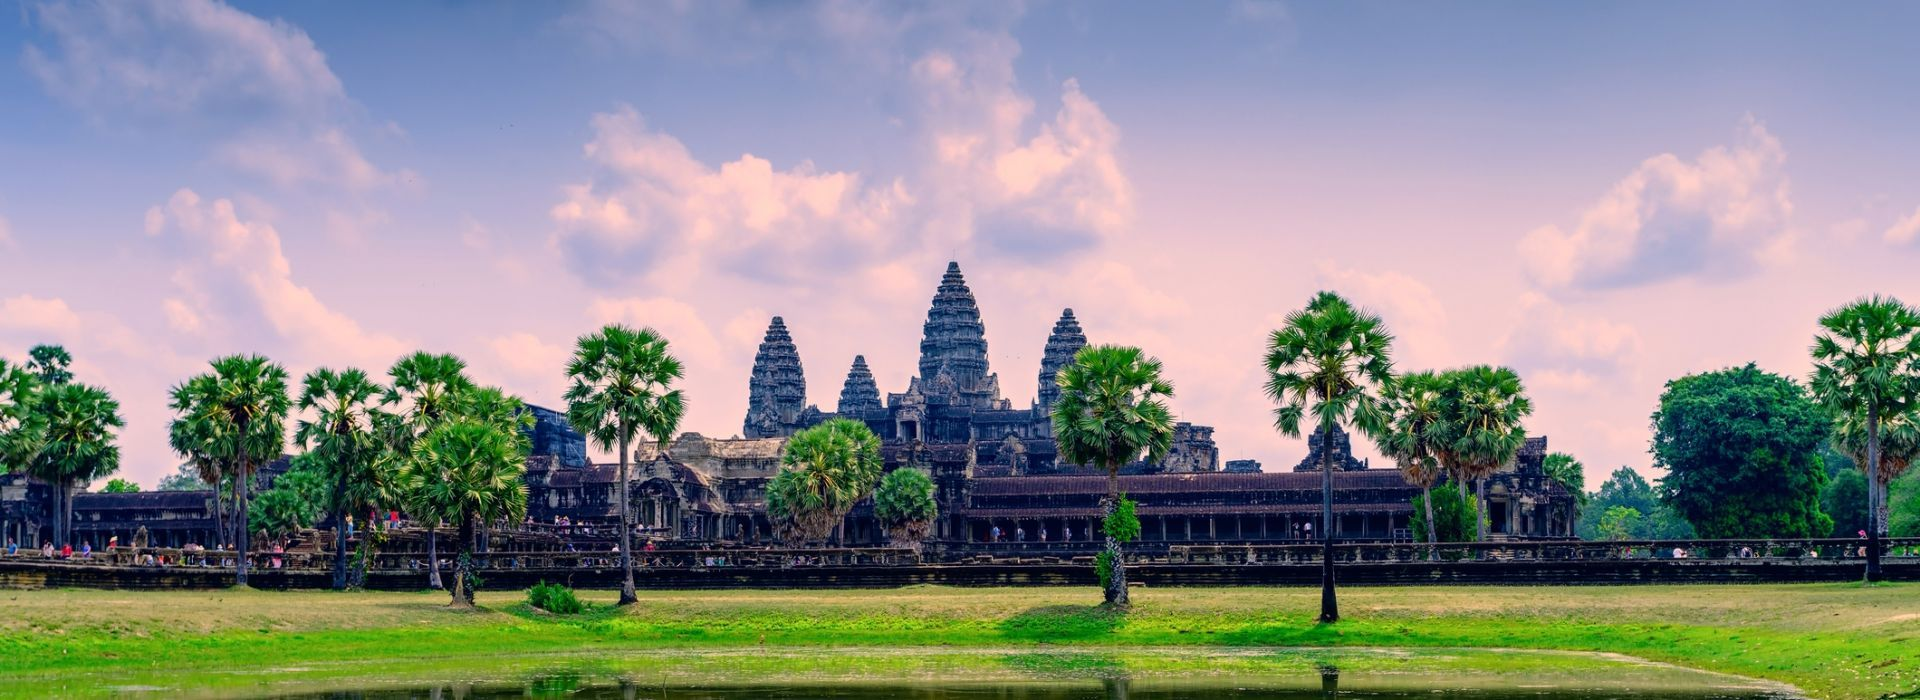 City sightseeing Tours in Angkor Wat